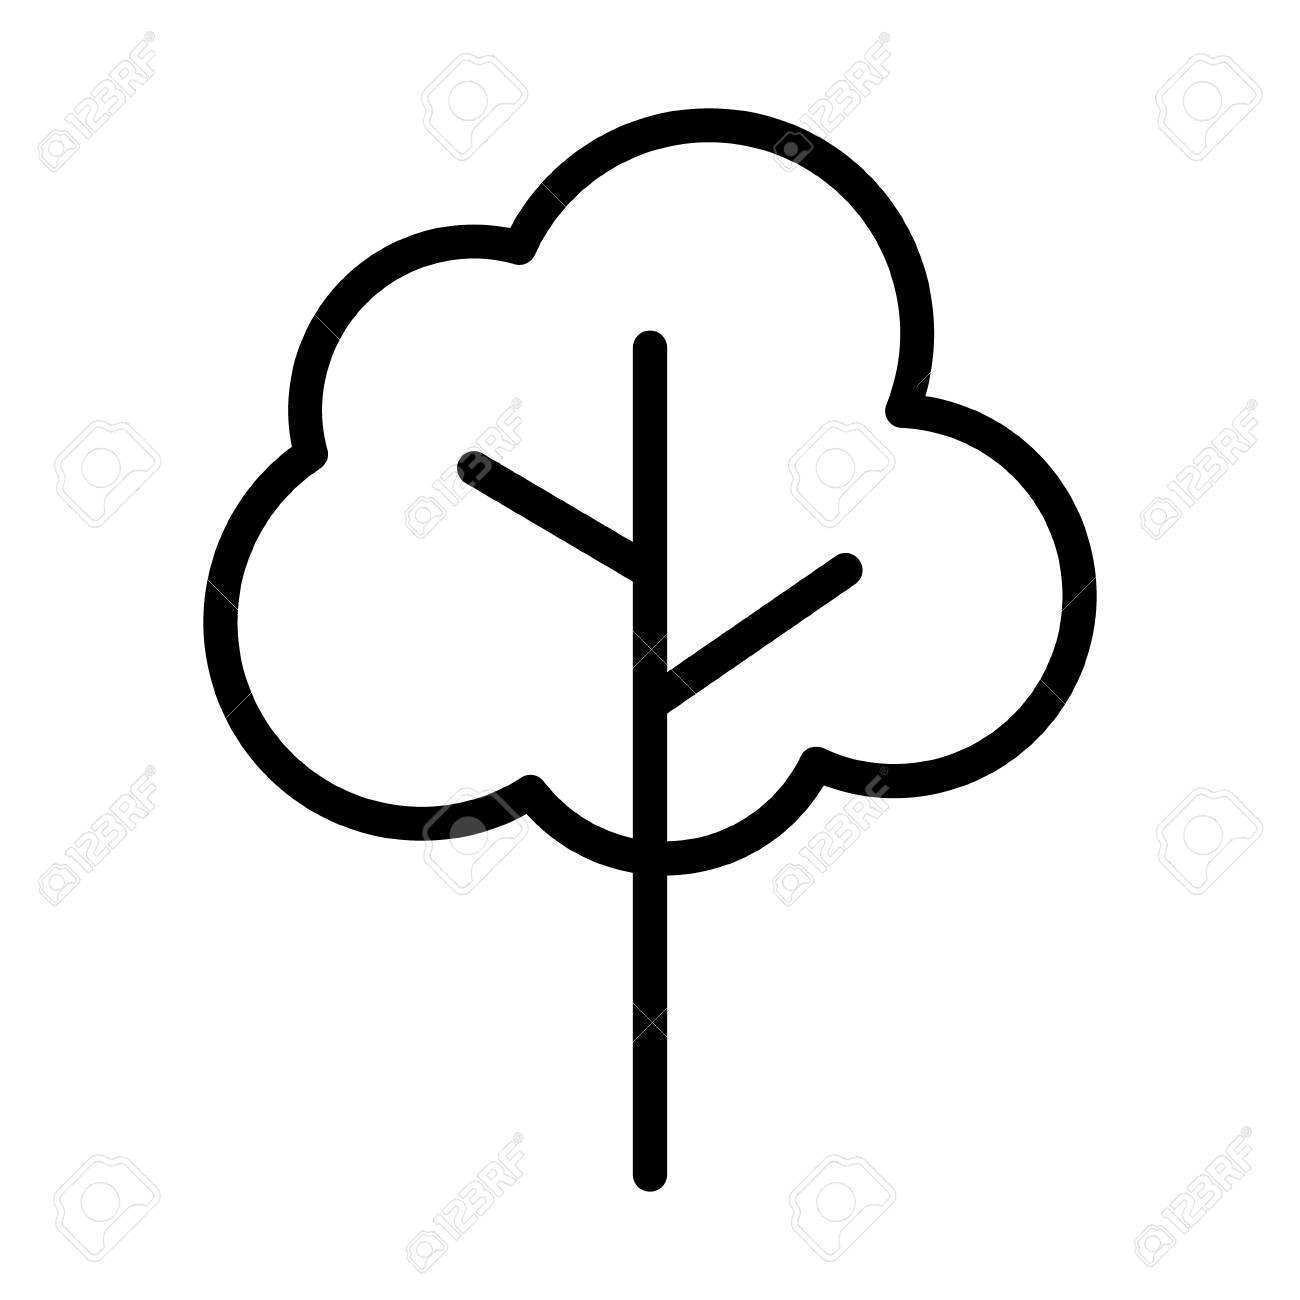 Simple Cartoon Tree Or Plant Line Art Vector Icon For Nature